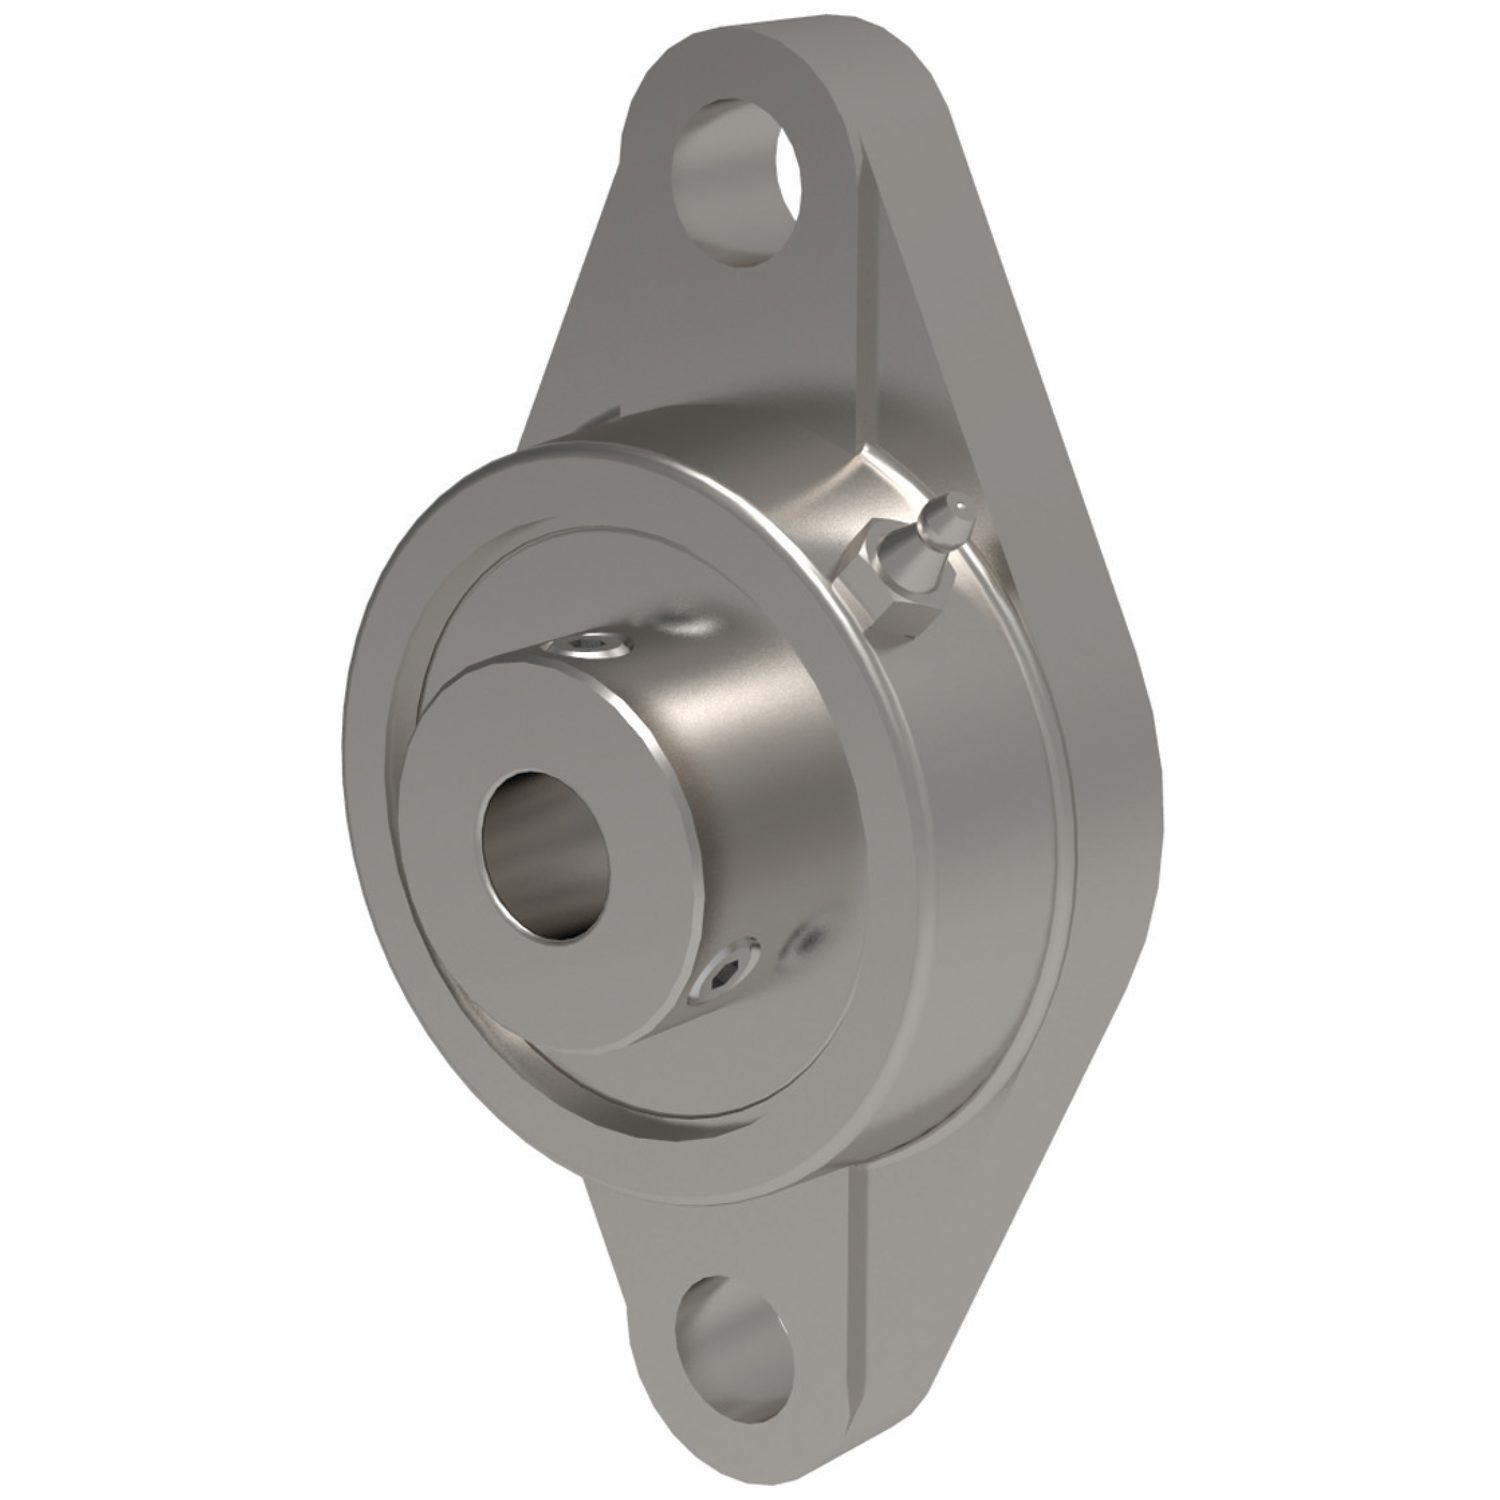 Stainless Oval Flanged Bearing Units Stainless Steel two bolt oval flanged cast iron pillow block/plummer block.